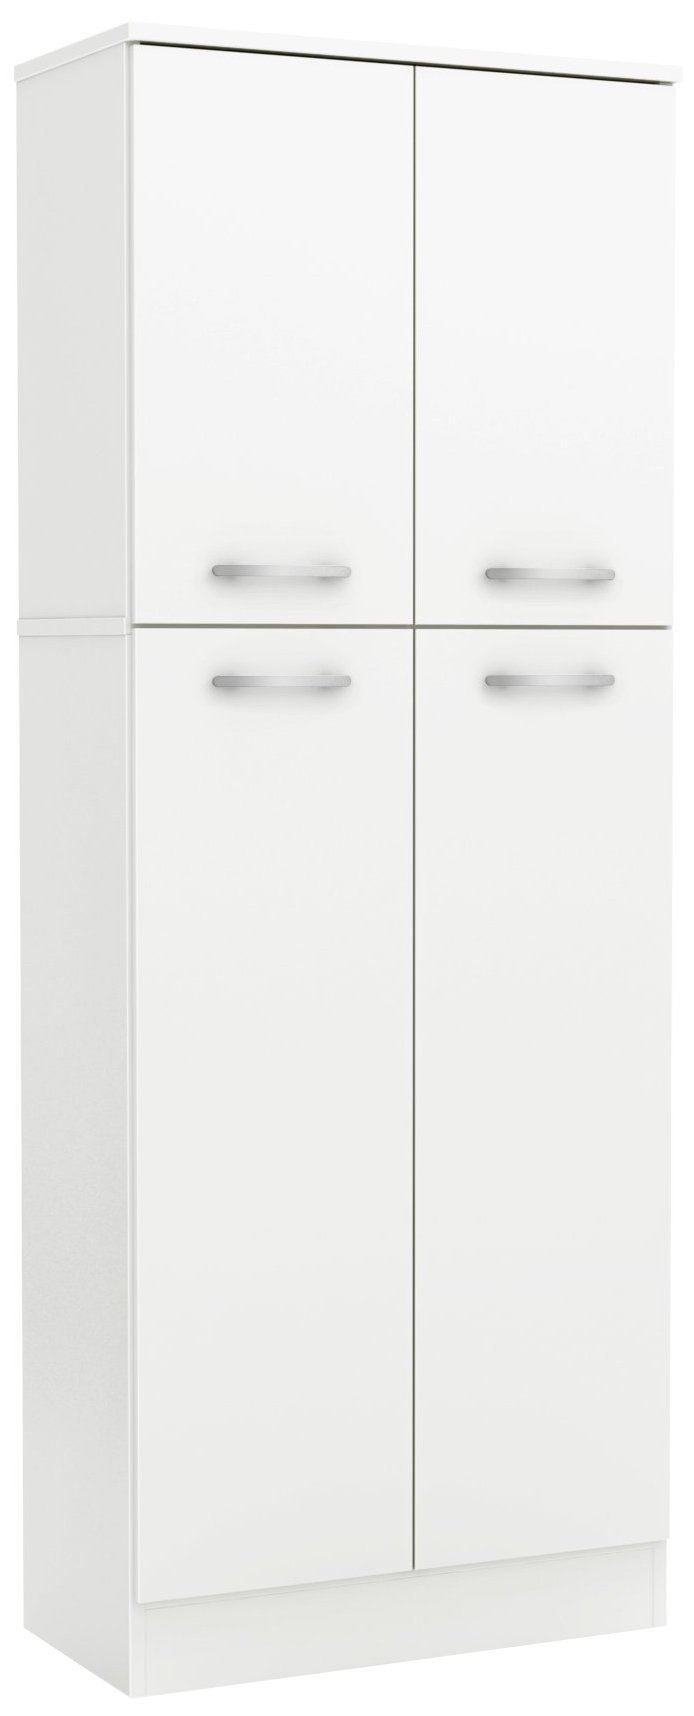 South Shore 4-Door Storage Pantry with Adjustable Shelves, Pure White by South Shore